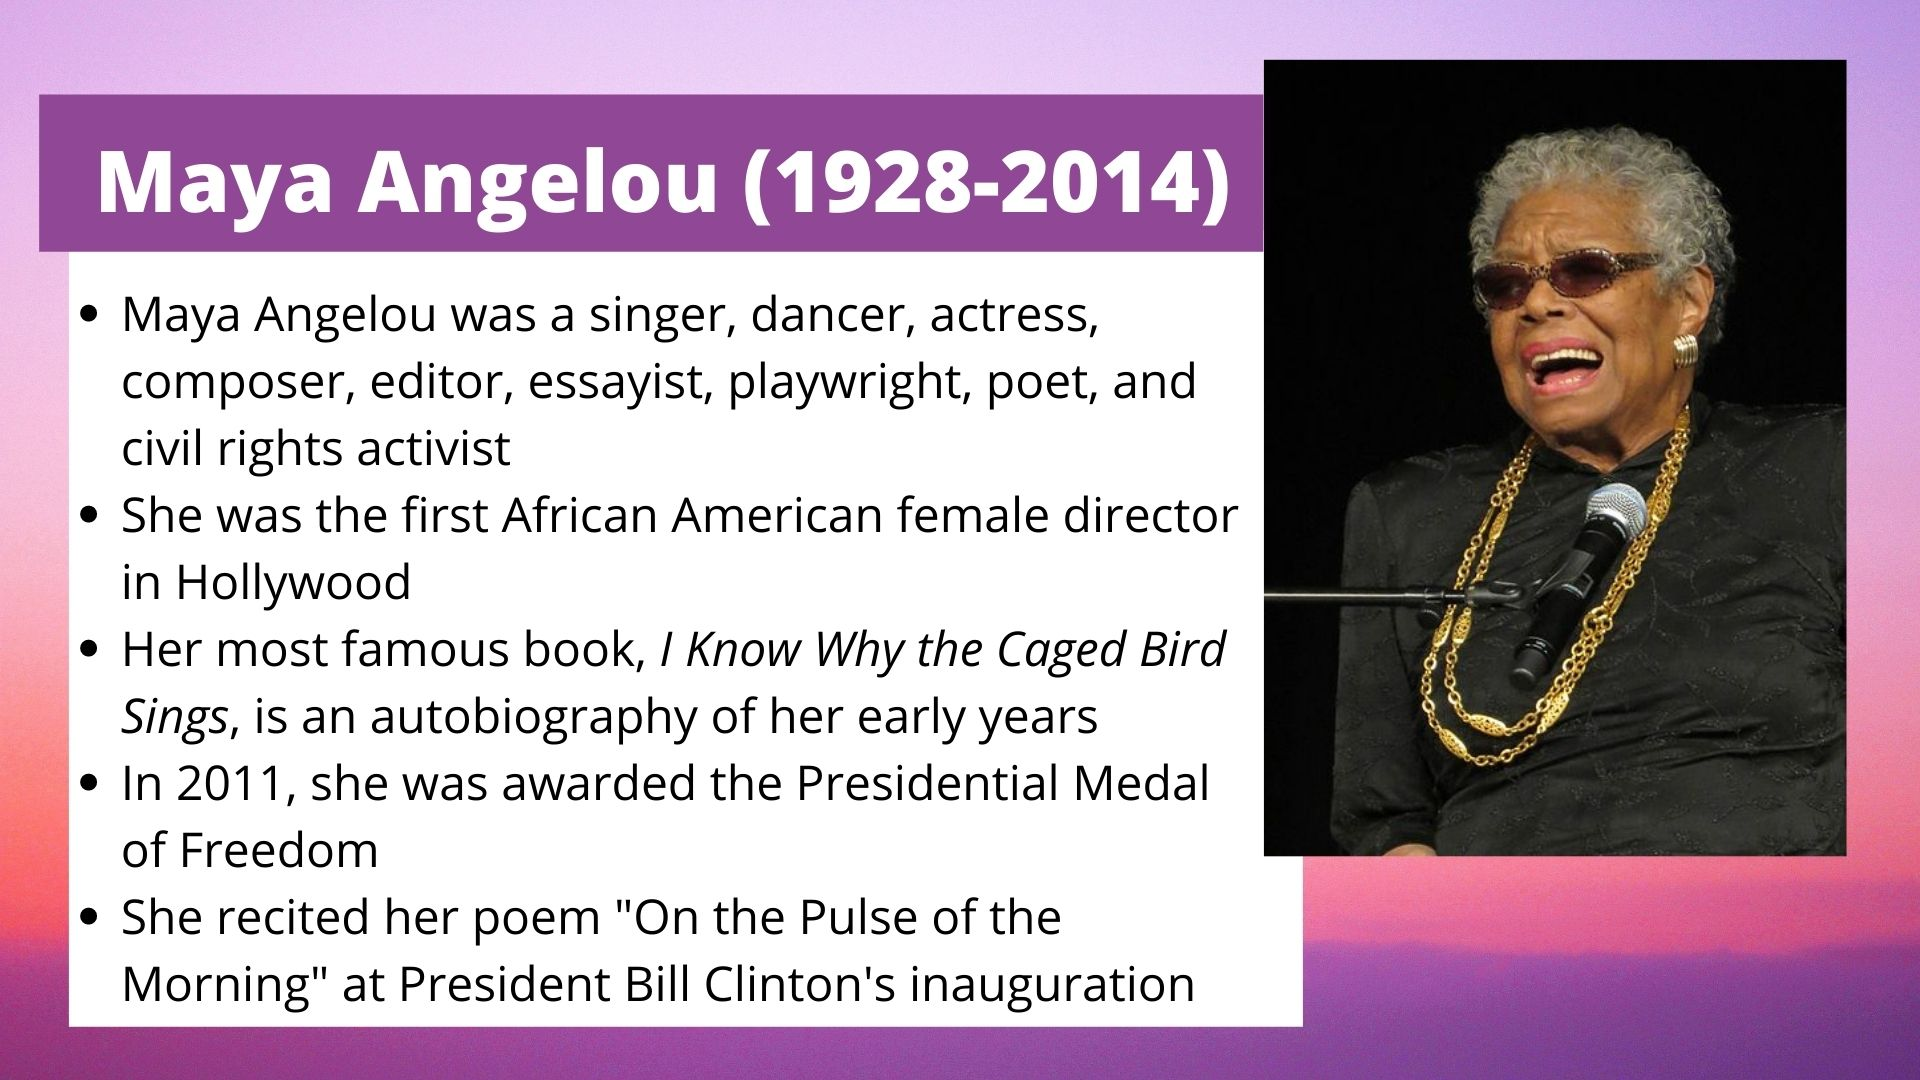 Maya Angelou (1928-2014) Maya Angelou was a singer, dancer, actress, composer, editor, essayist, playwright, poet, and civil rights activist She was the first African American female director in Hollywood Her most famous book, I Know Why the Caged Bird Sings, is an autobiography of her early years In 2011, she was awarded the Presidential Medal of Freedom She recited her poem